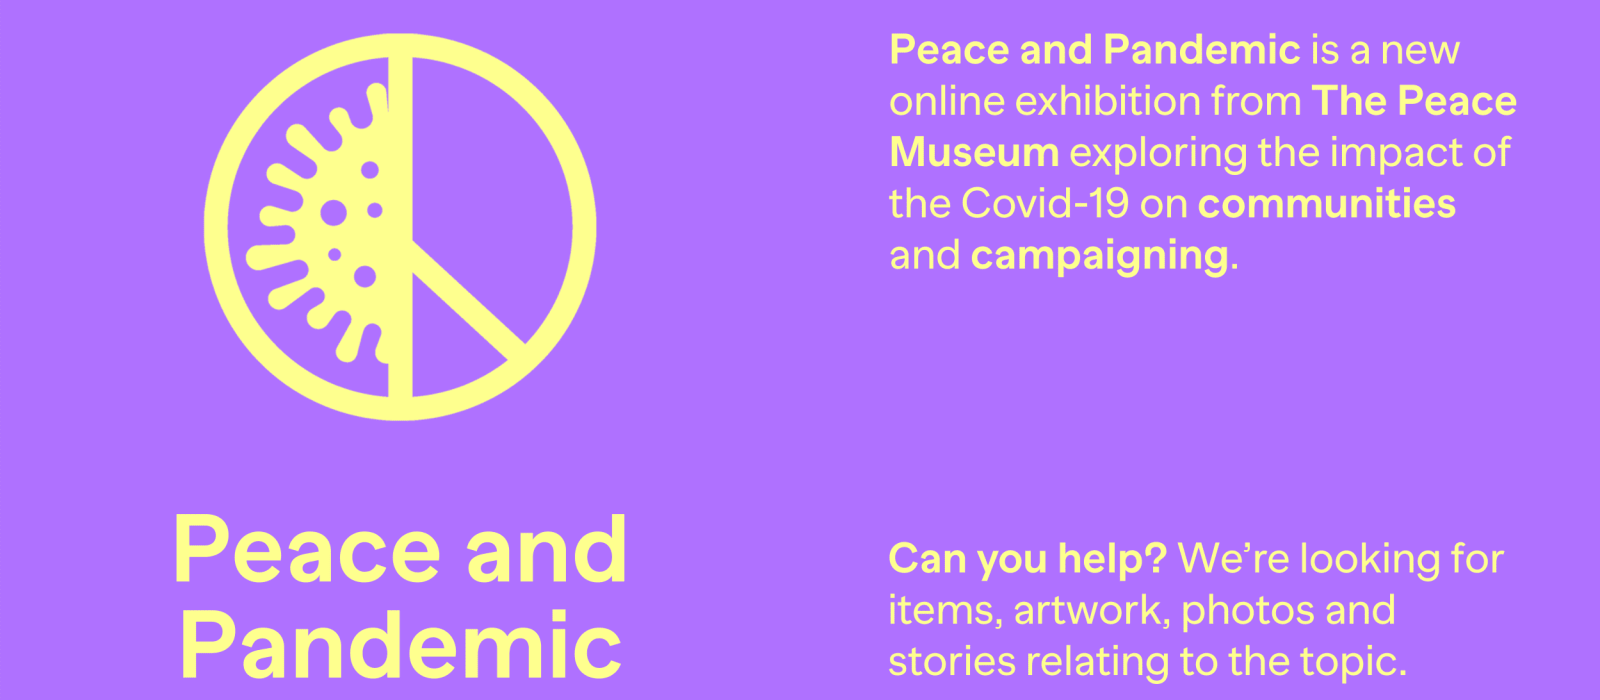 Peace and Pandemic online exhibition launched!